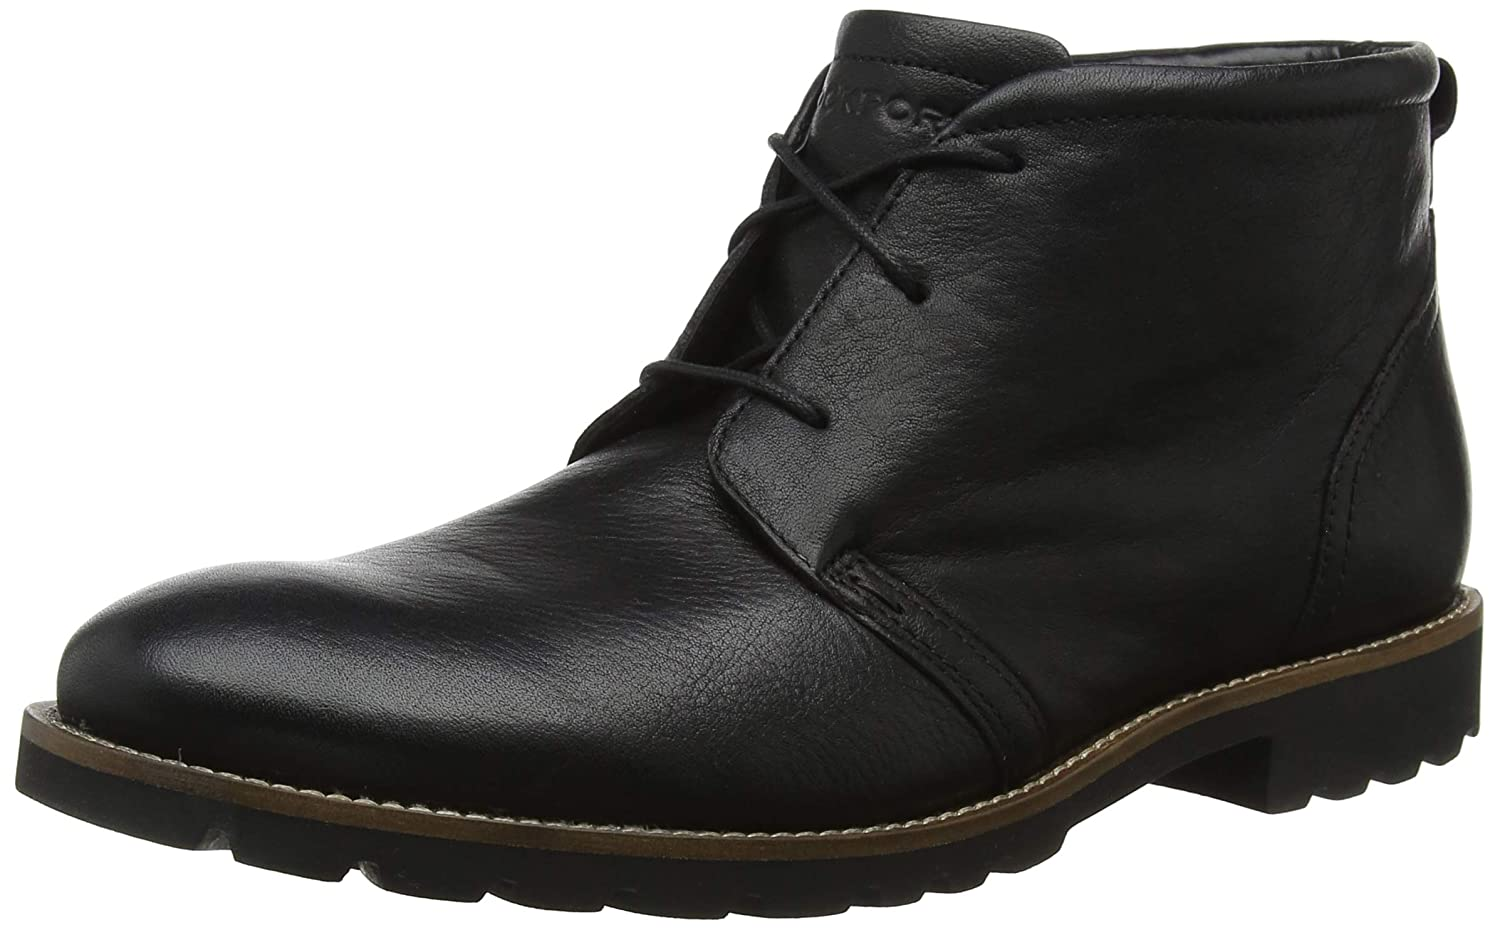 TALLA 40.5 EU. Rockport Modern Break Chukka Black, Botas Hombre